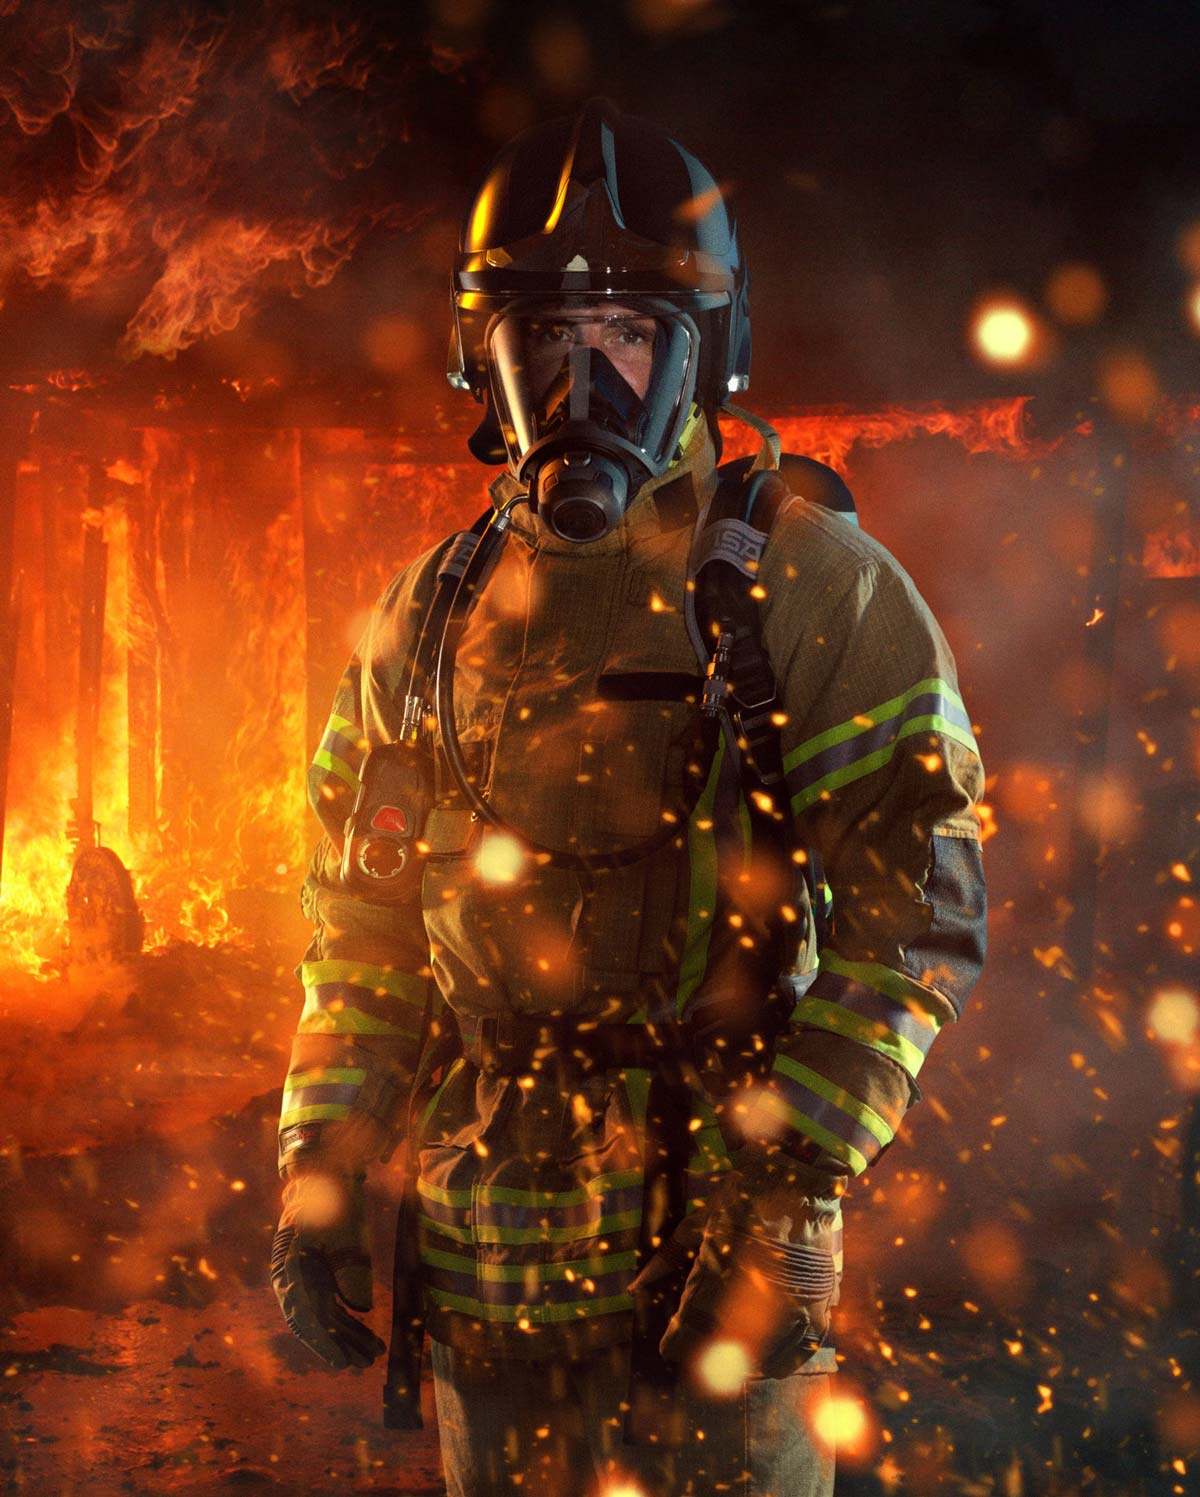 Product photography composite of fireman and surrounding flames